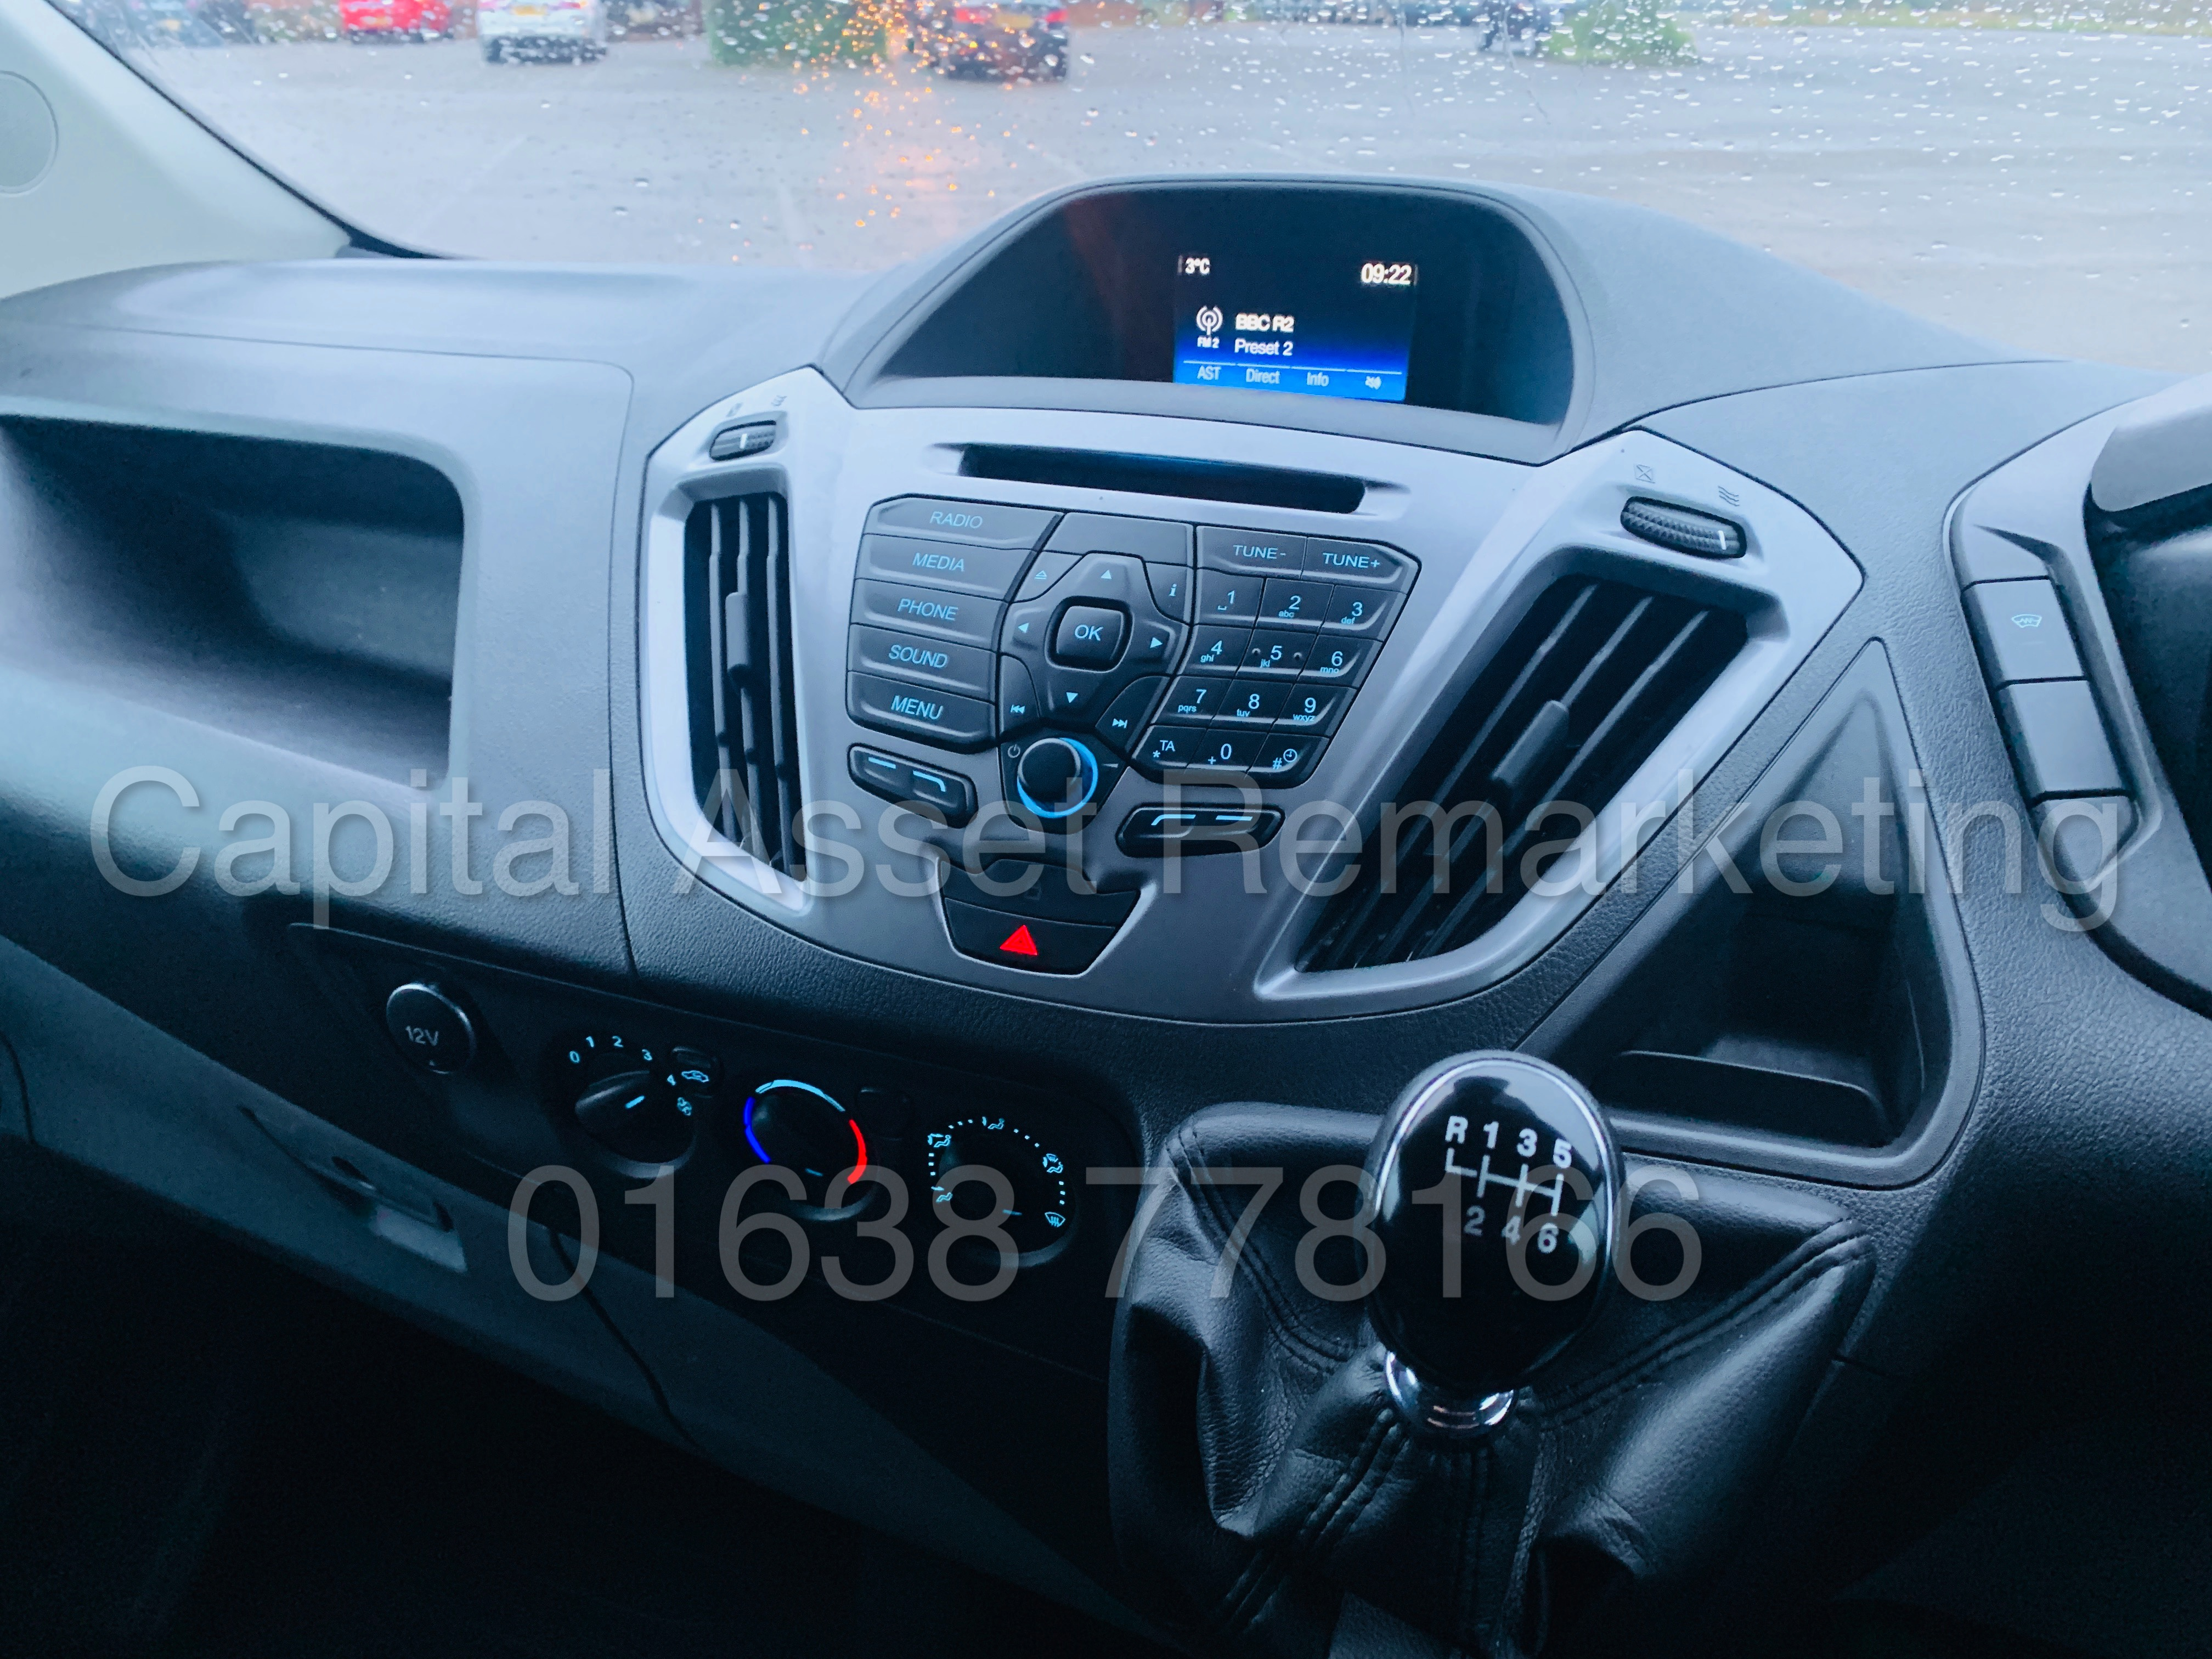 (On Sale) FORD TRANSIT *TREND* 290 SWB (2017 - EURO 6 / AD-BLUE) '2.0 TDCI - 130 BHP - 6 SPEED' - Image 34 of 41